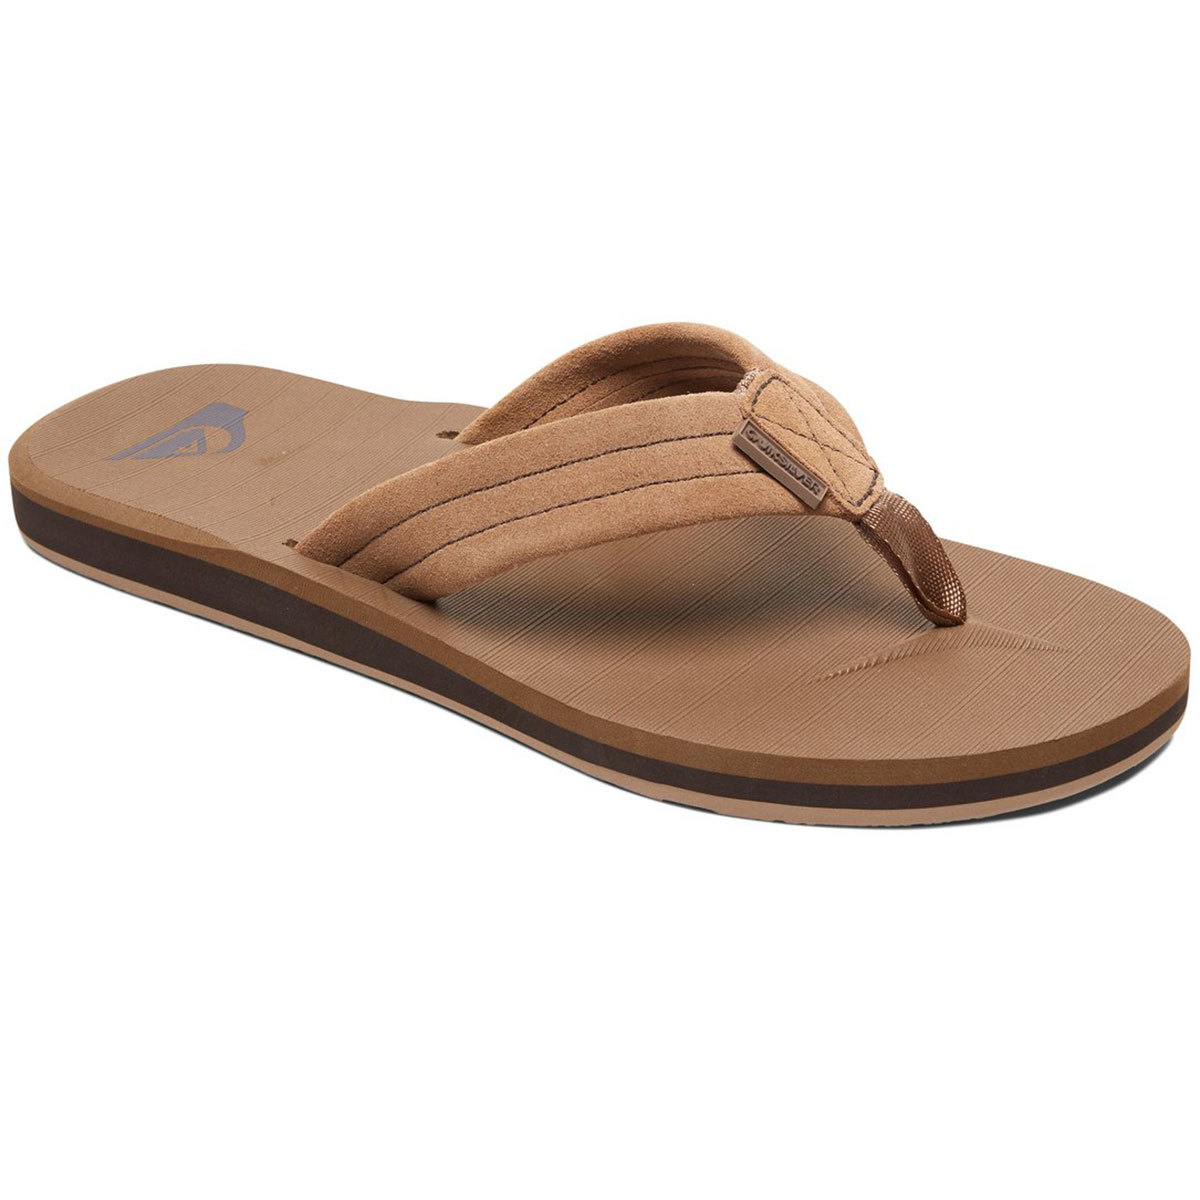 Quiksilver Boys' Carver Flip Flop Sandals - Brown, 2